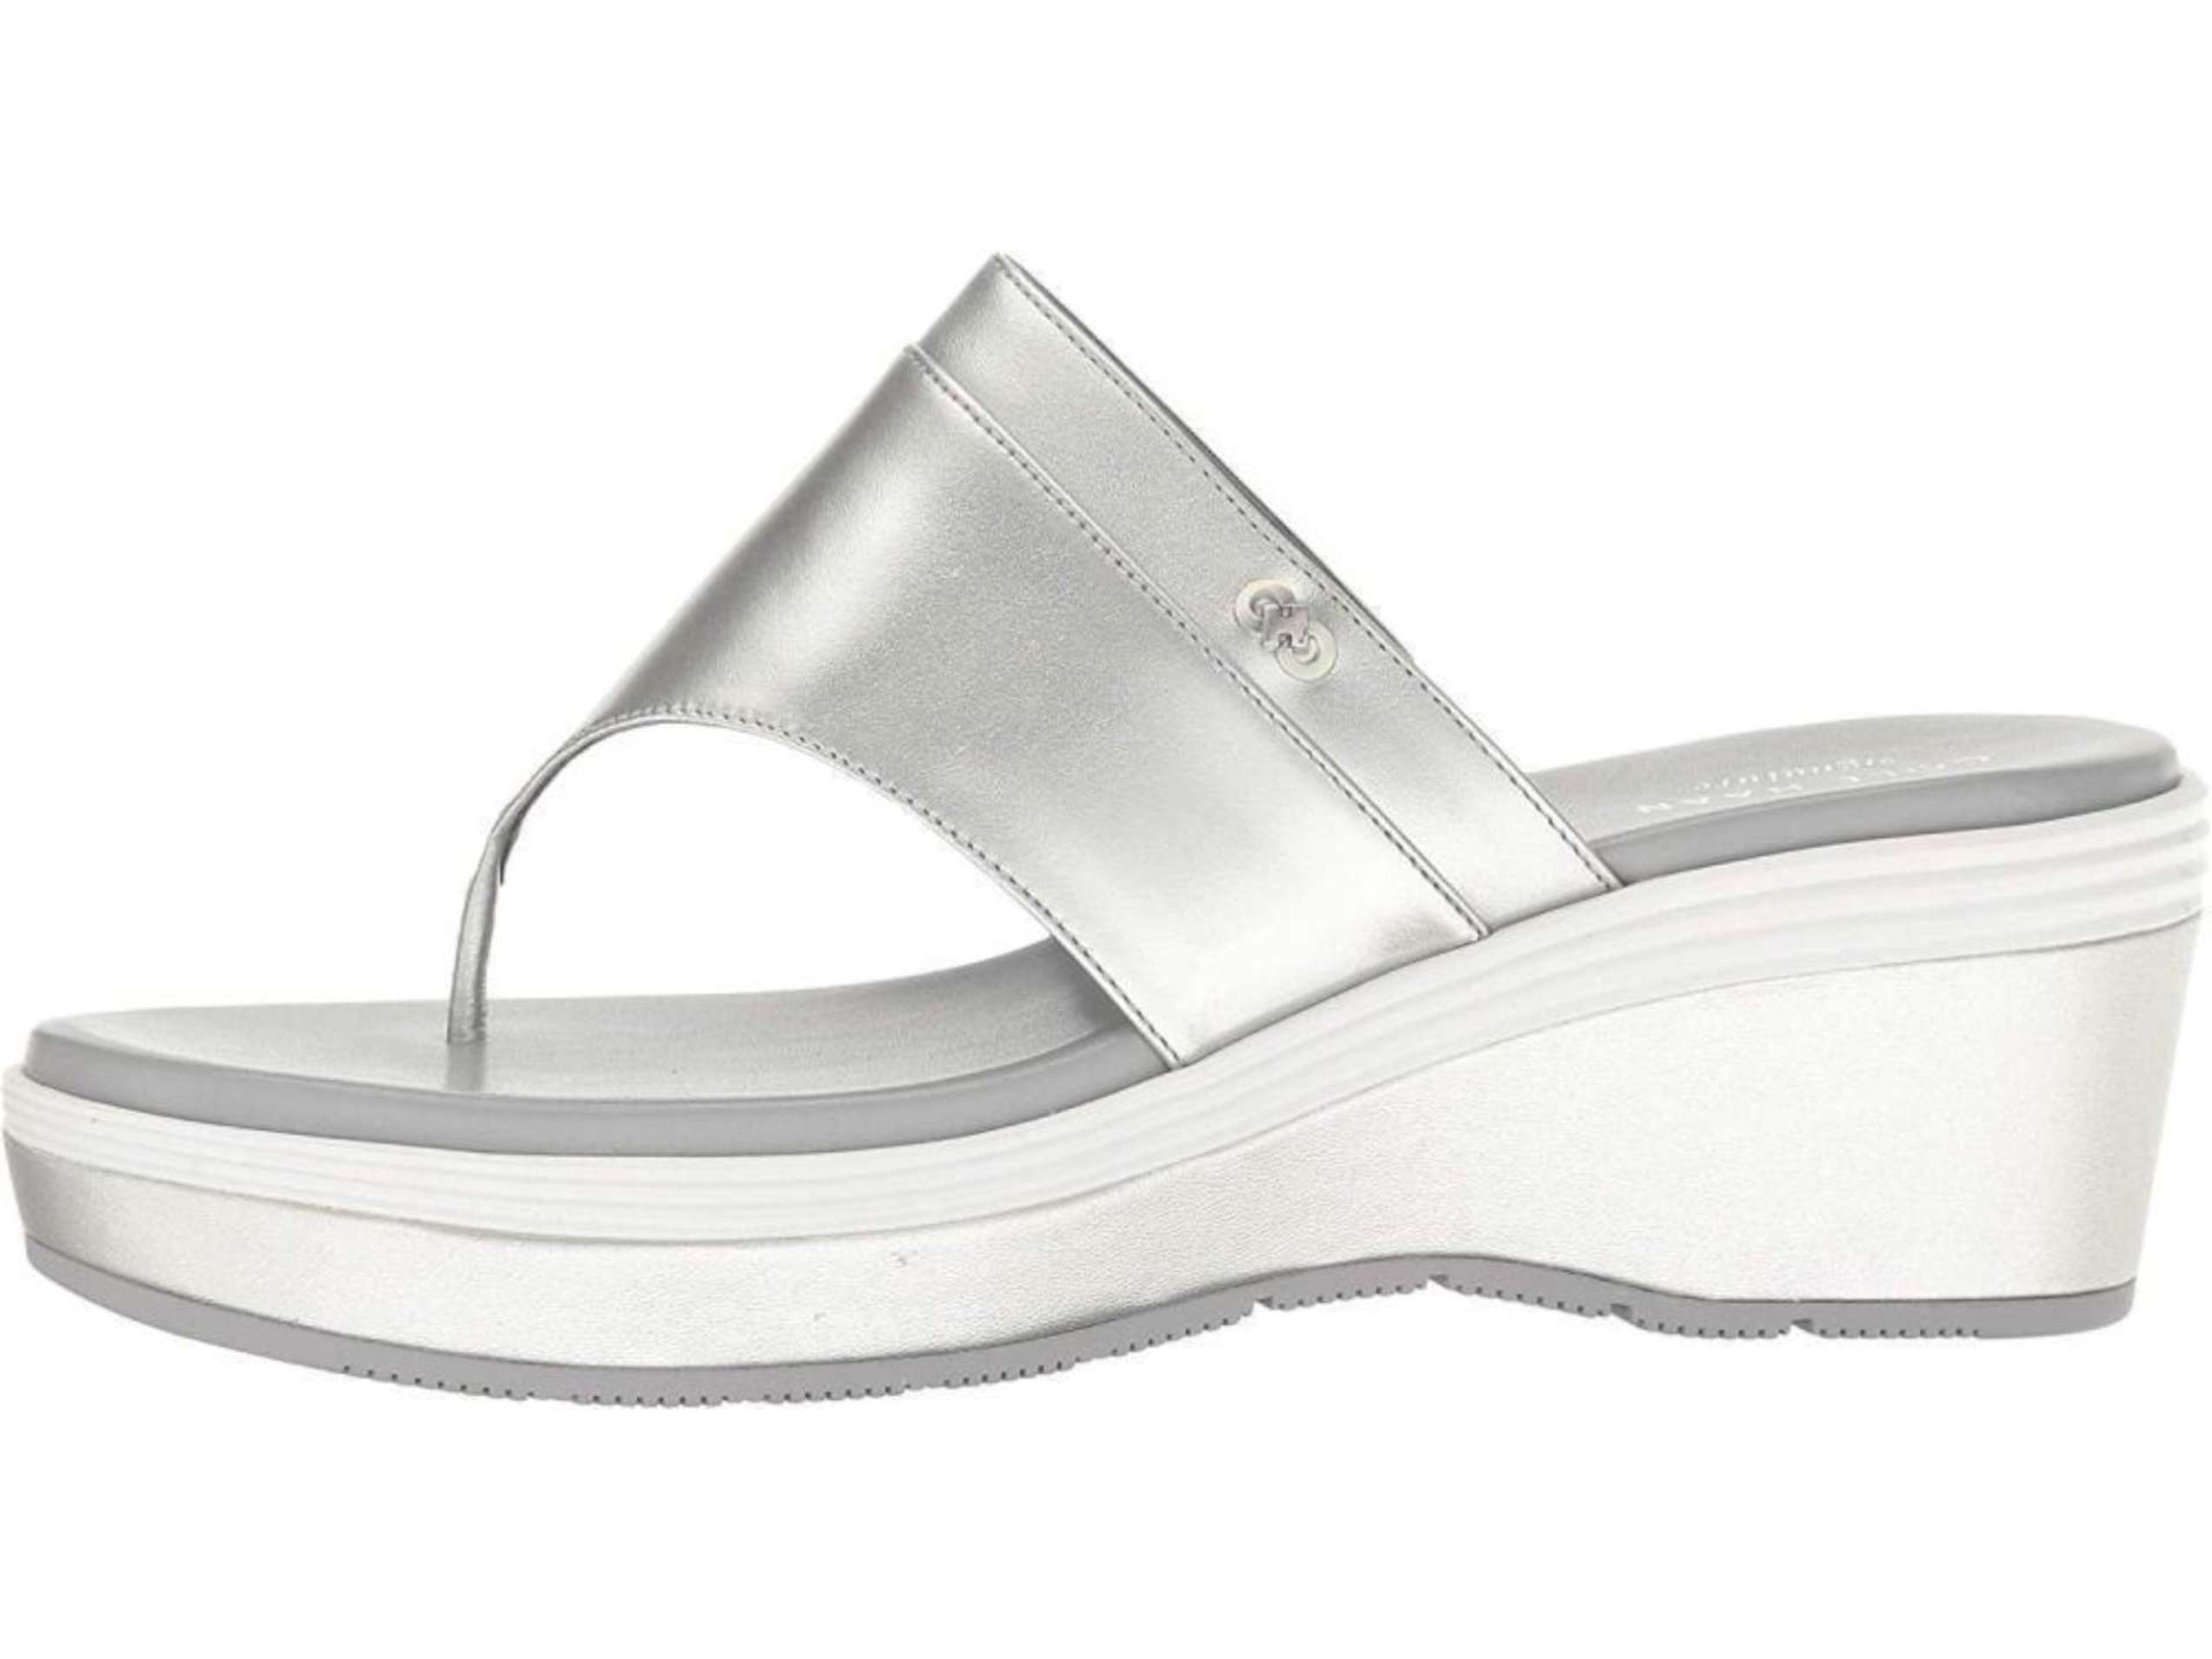 5a5a77c7a6b Cole Haan Womens Cecily Grand Thong Open Toe Casual